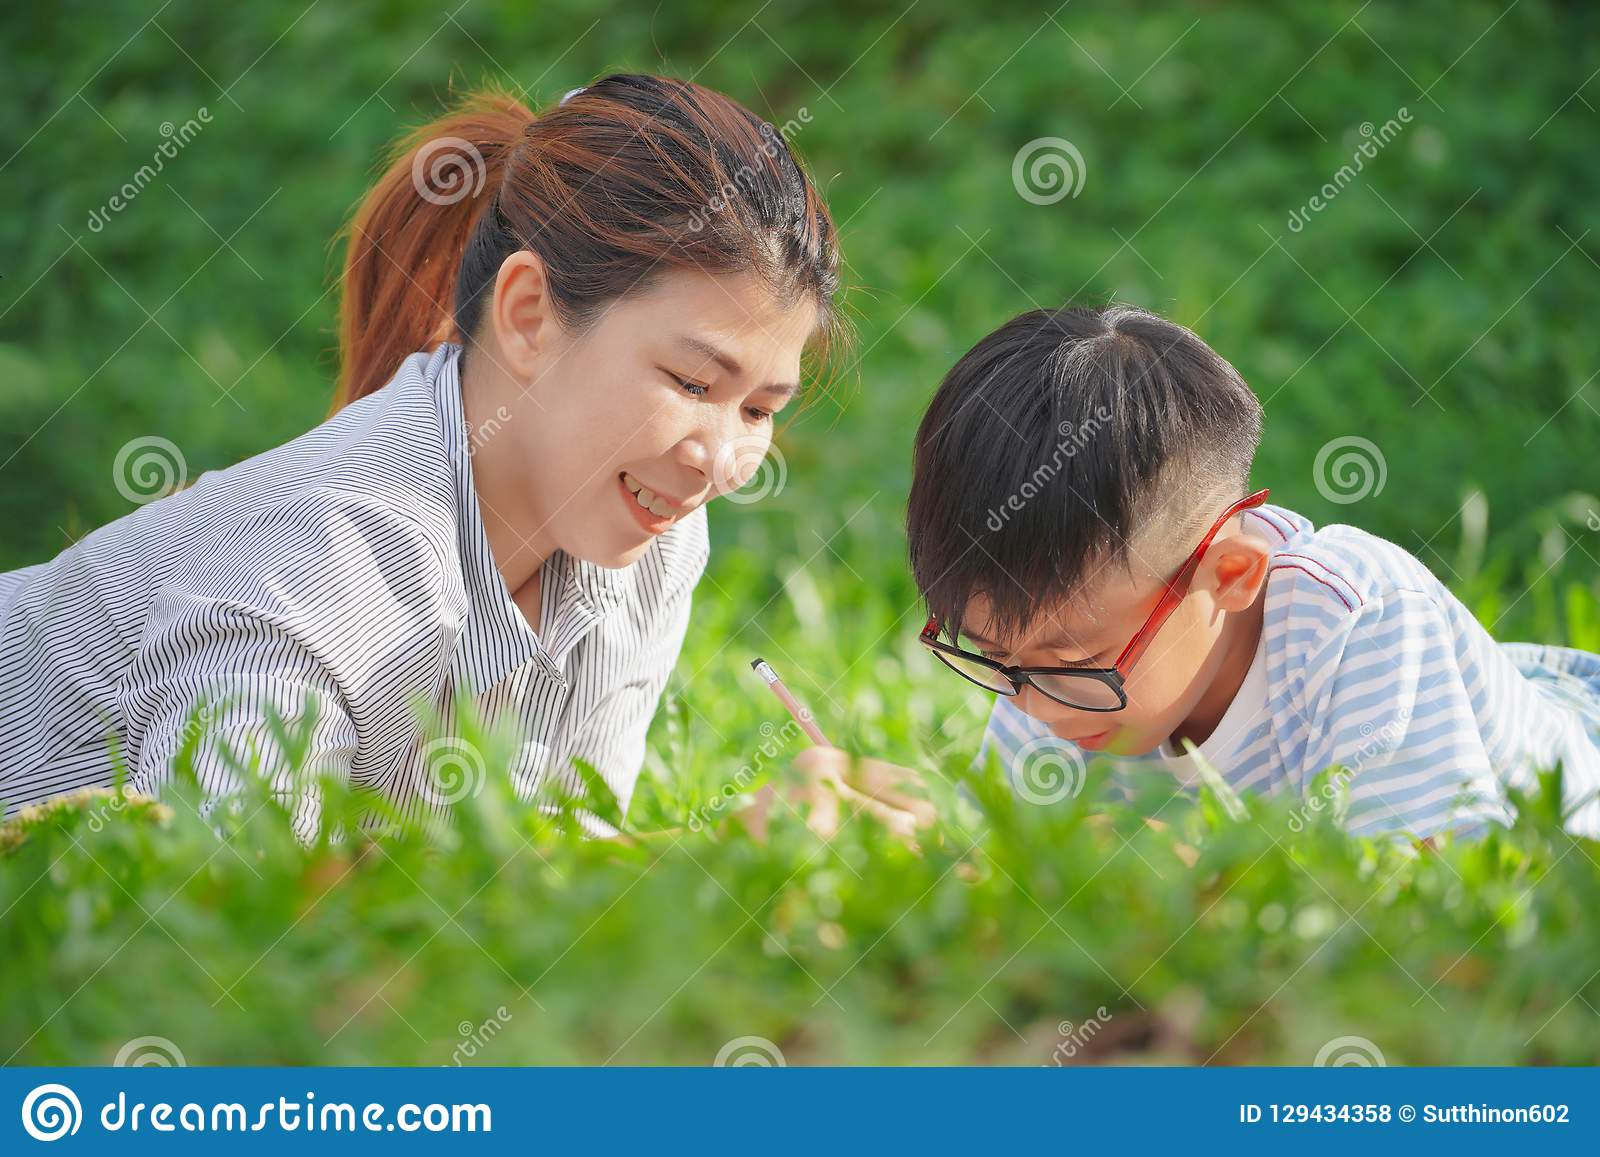 Mother with daughter in the park, Mother teaching son write on notebook and sitting picnic in the park.